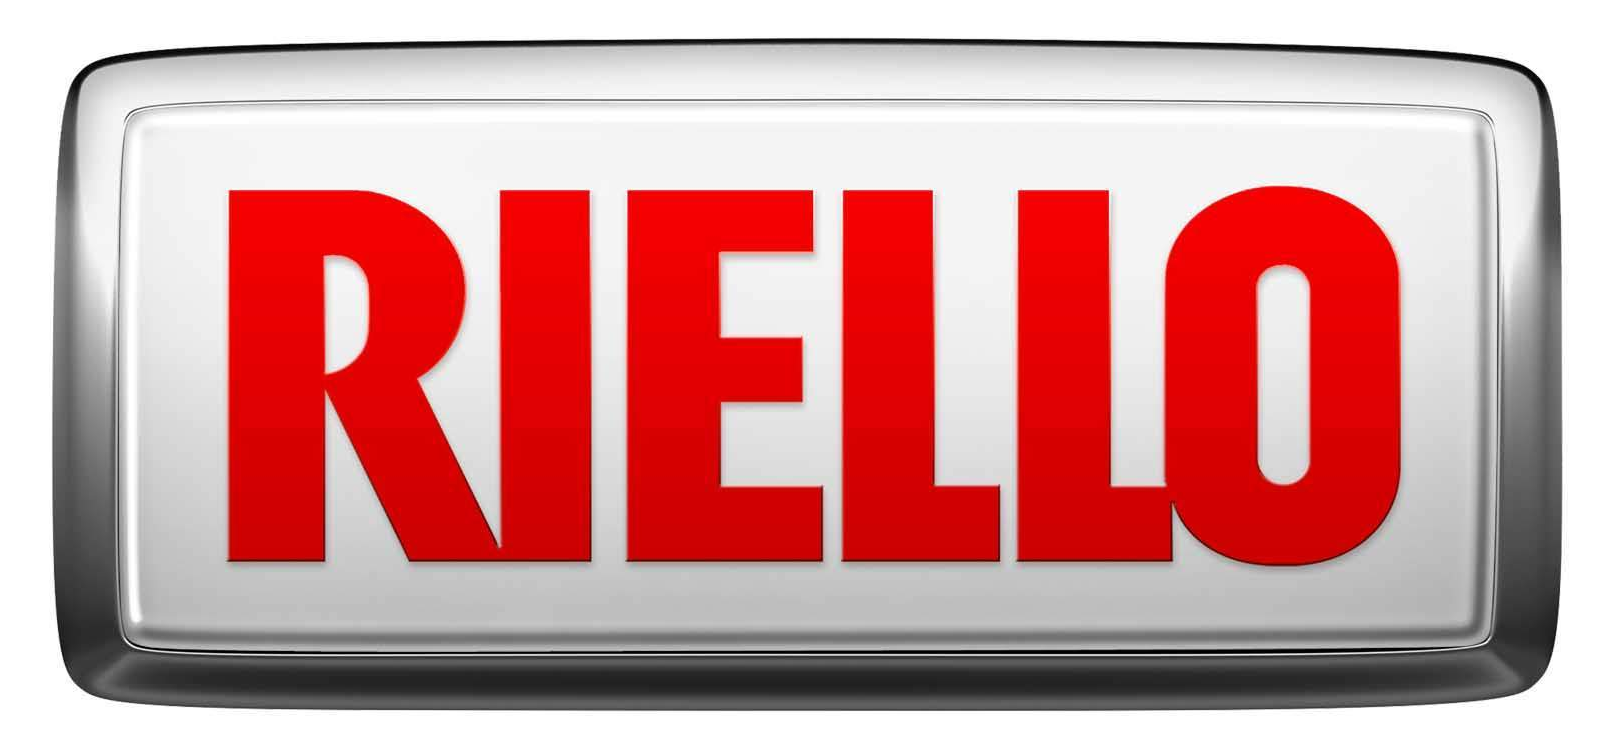 riello_logo_main3_new